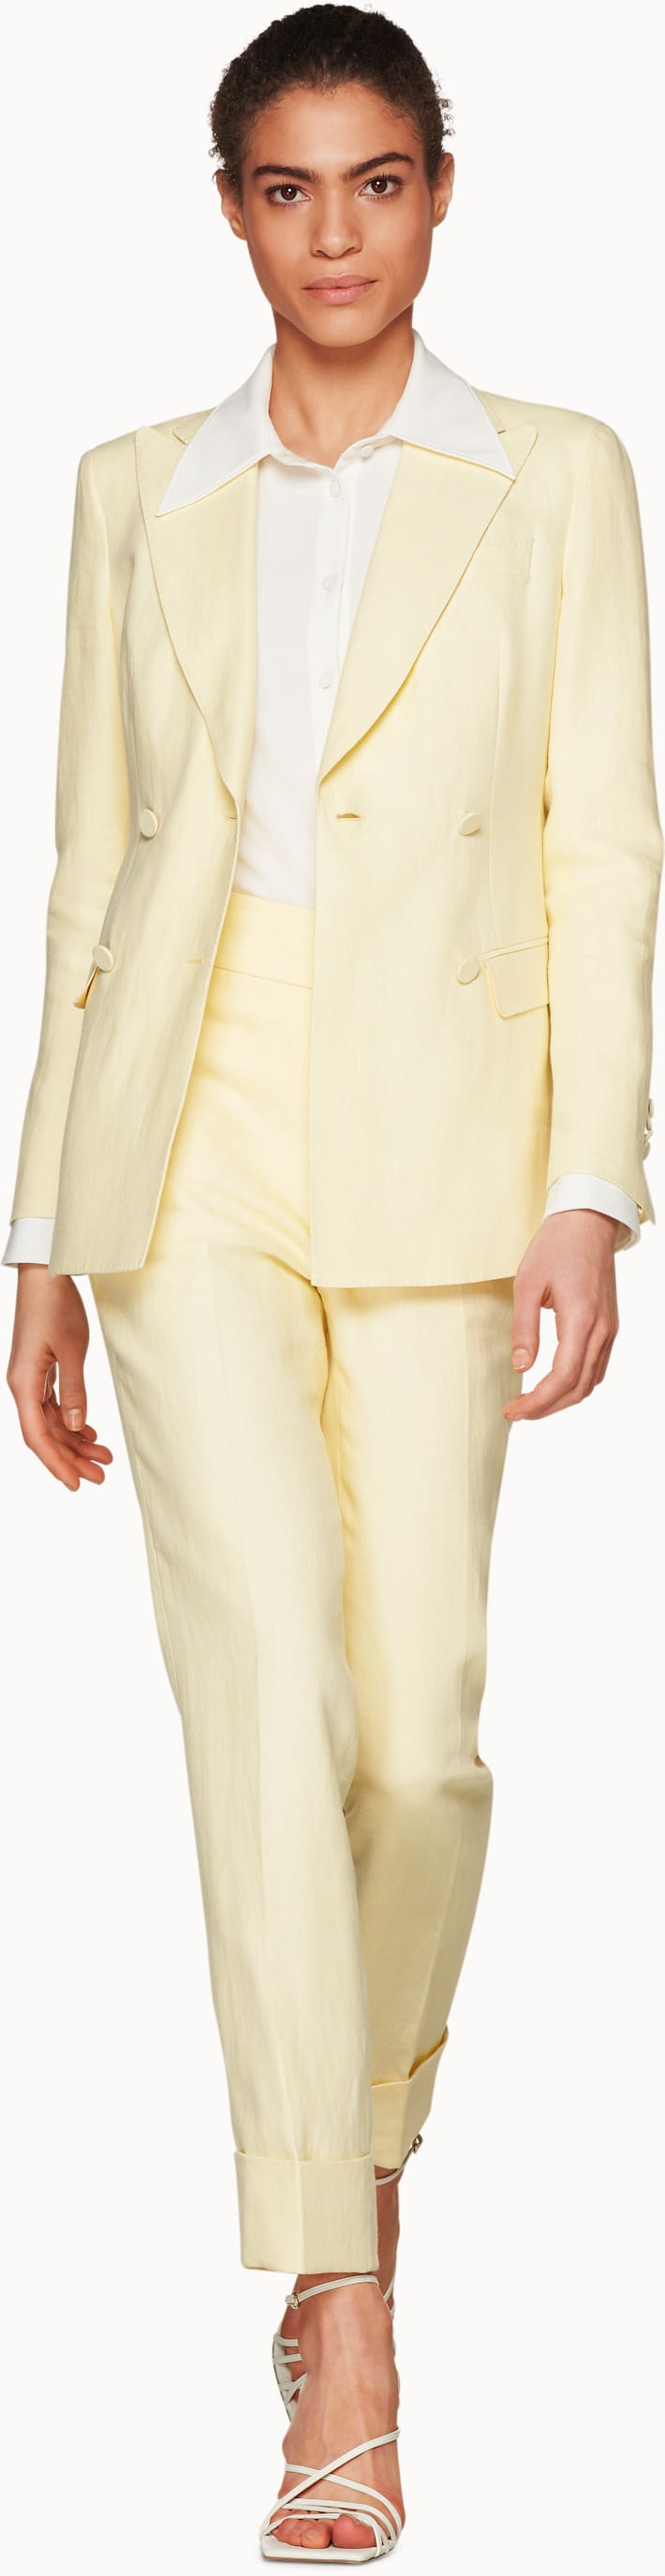 Cameron 4-Button Light Yellow Suit